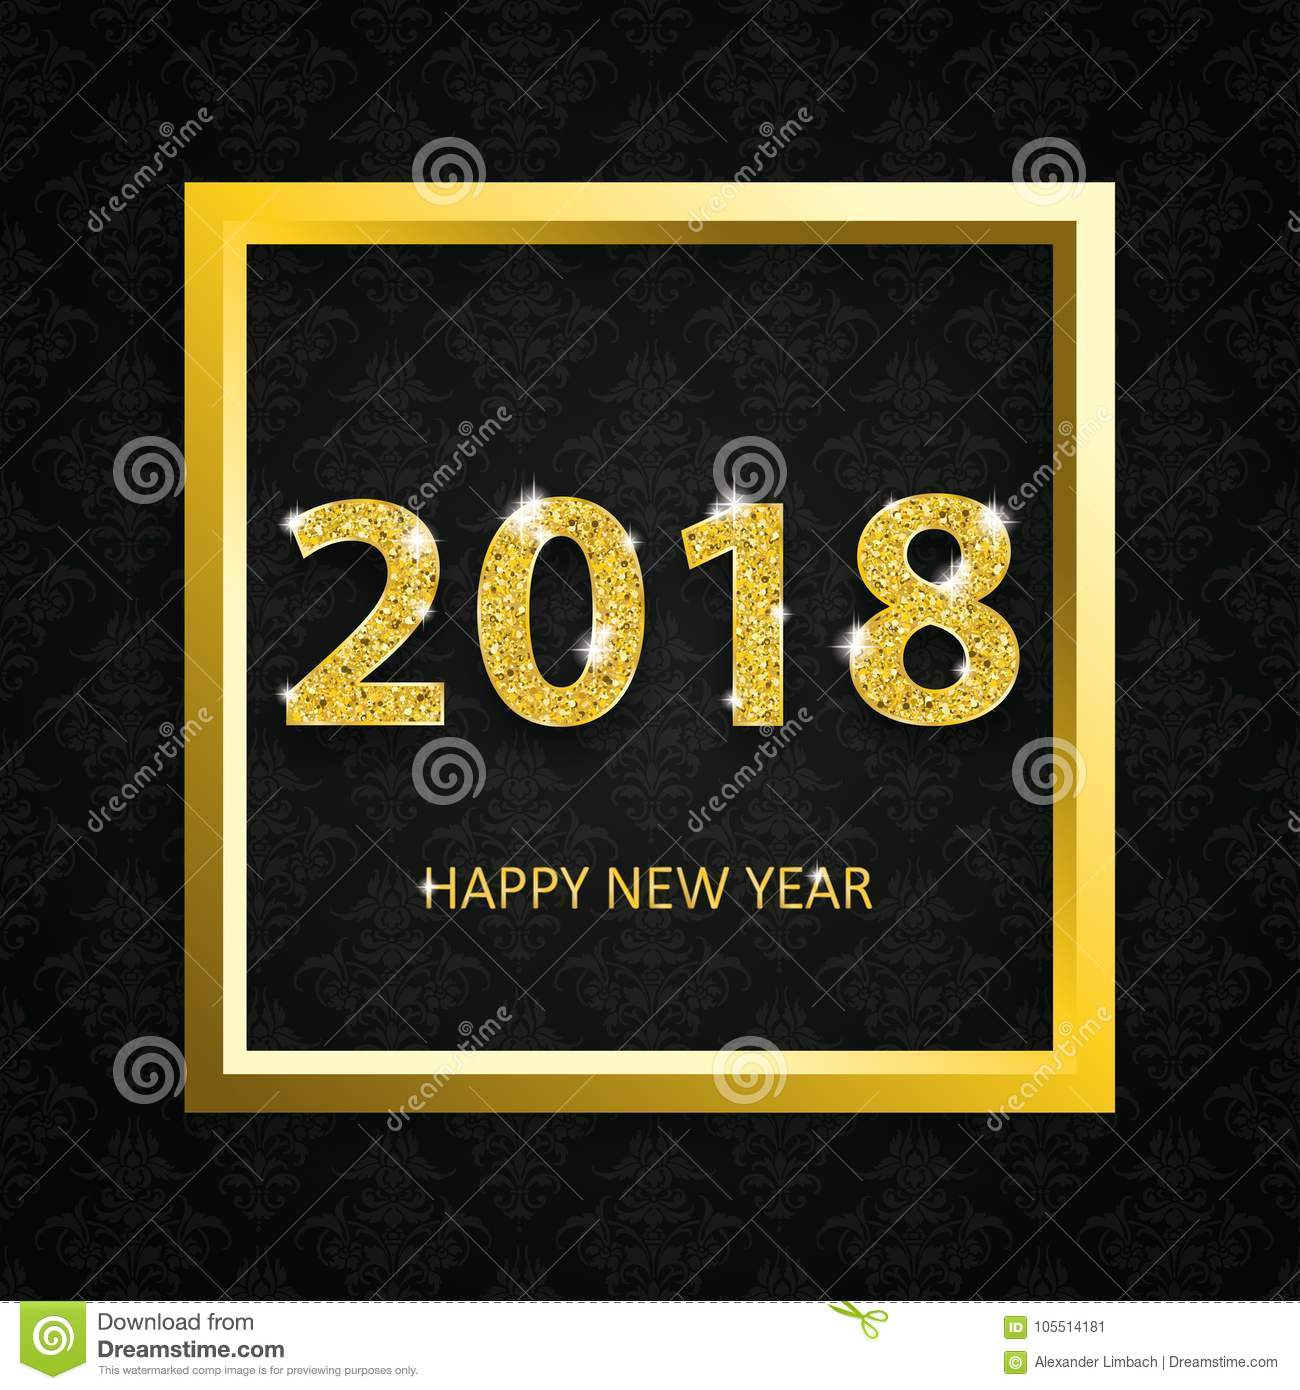 download 2018 happy new year golden frame black ornaments wallpaper stock vector illustration of dark